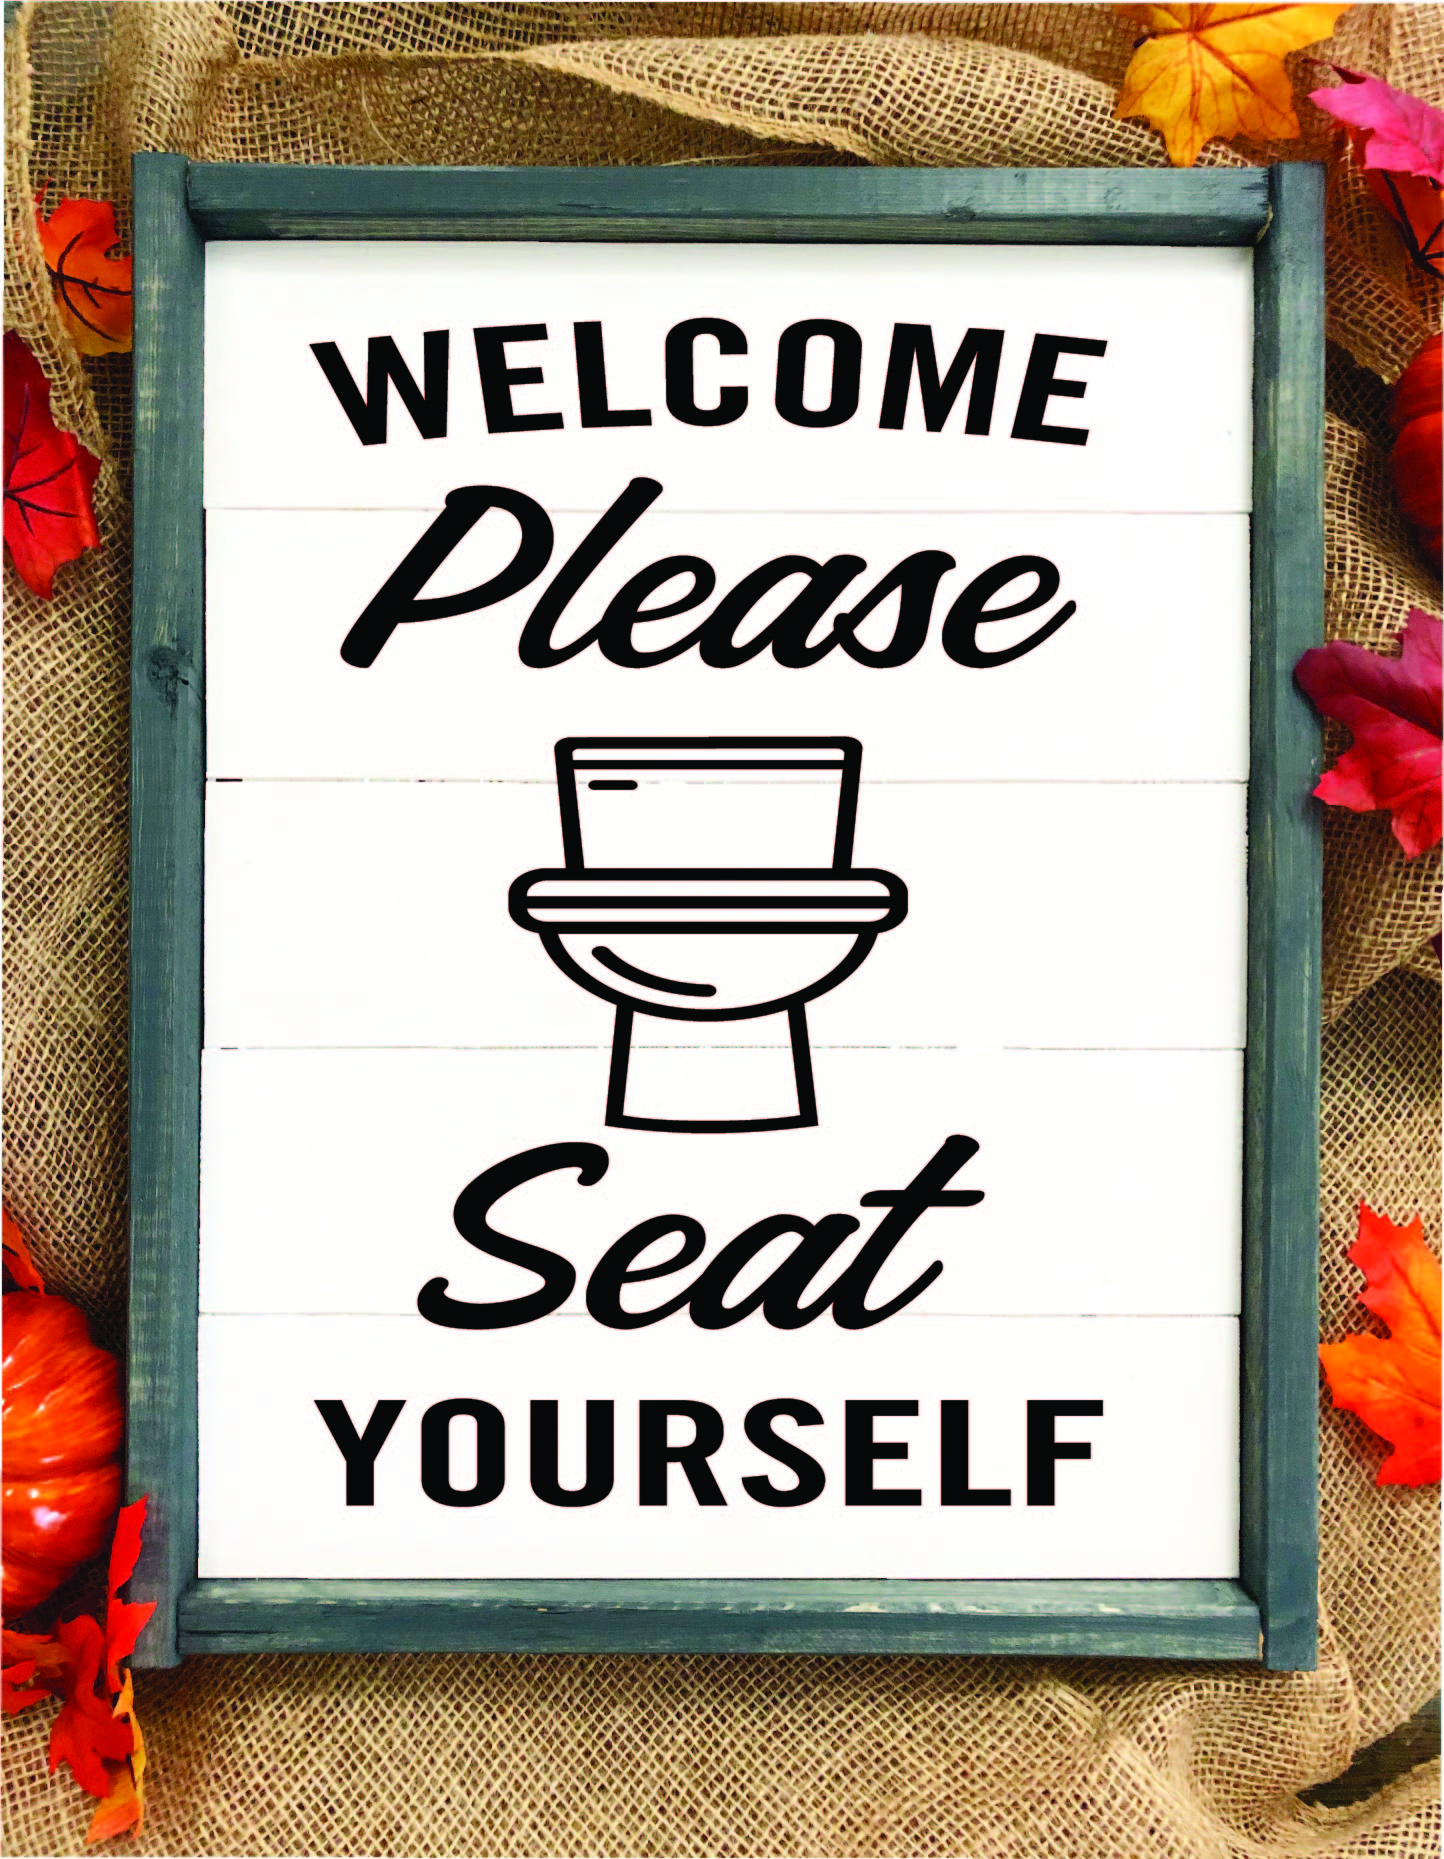 Welcome, Please Seat Yourself.jpg